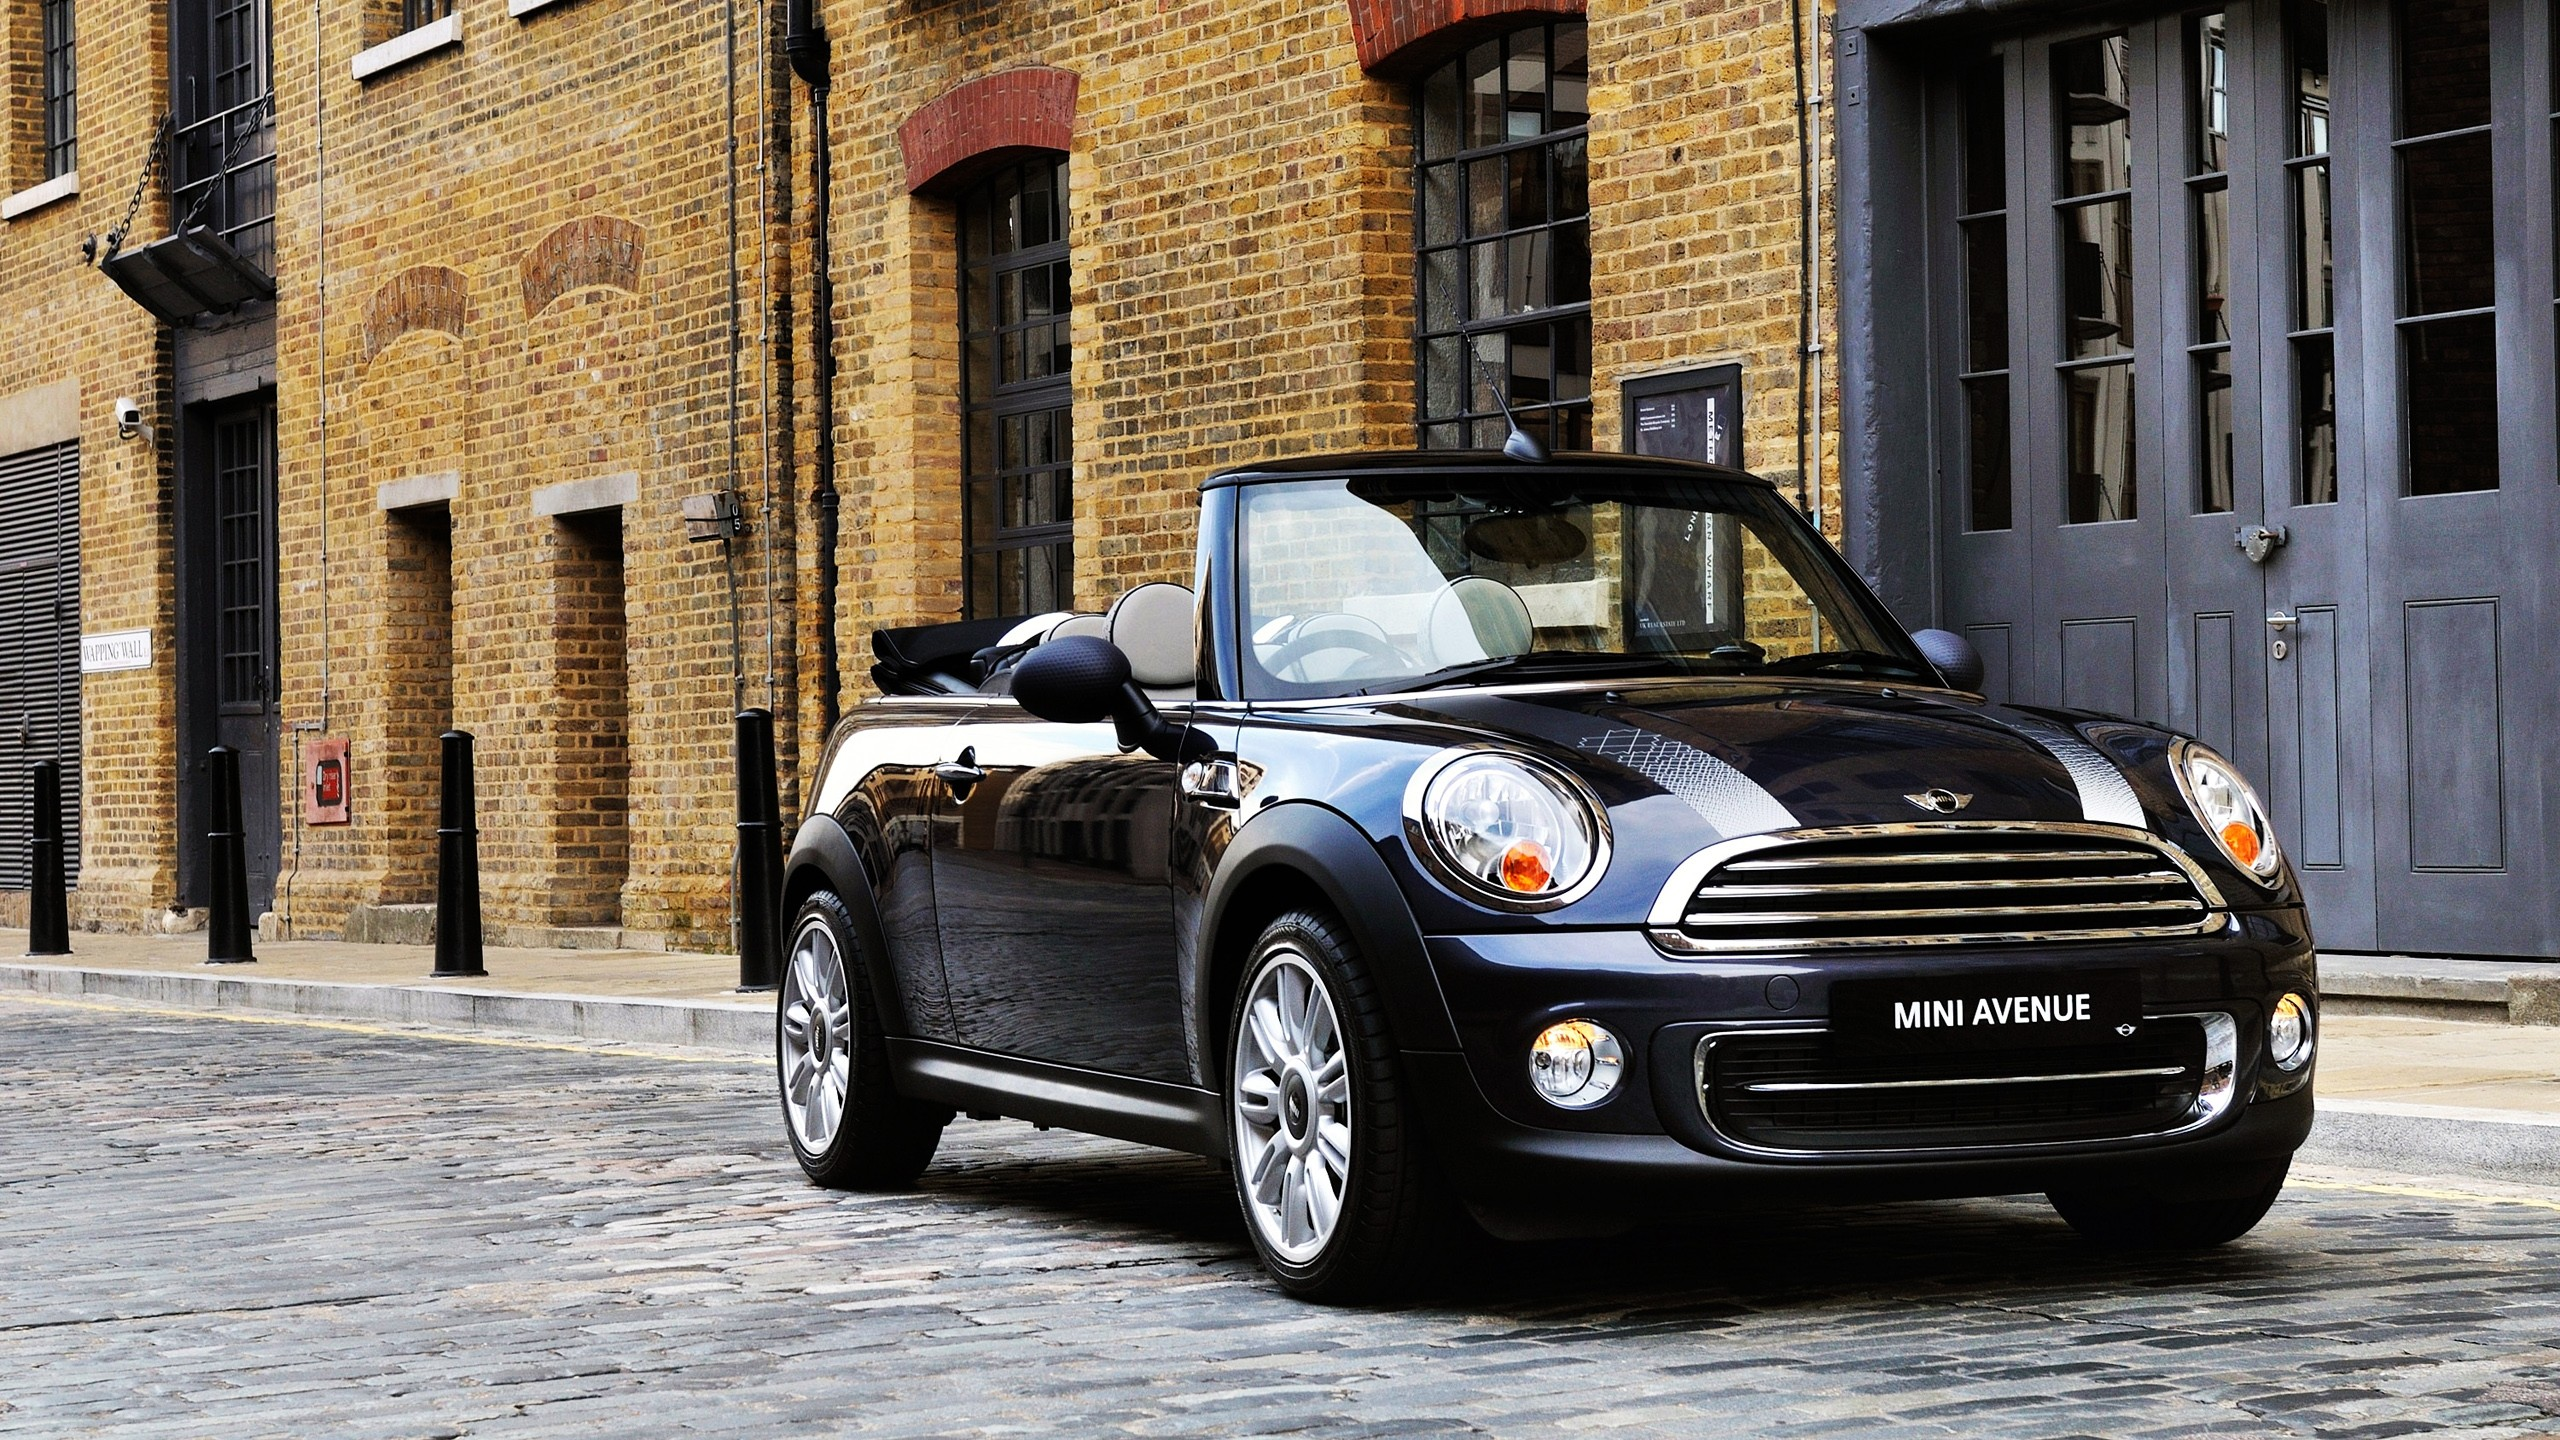 181 Mini Cooper HD Wallpapers Background Images 2560x1440